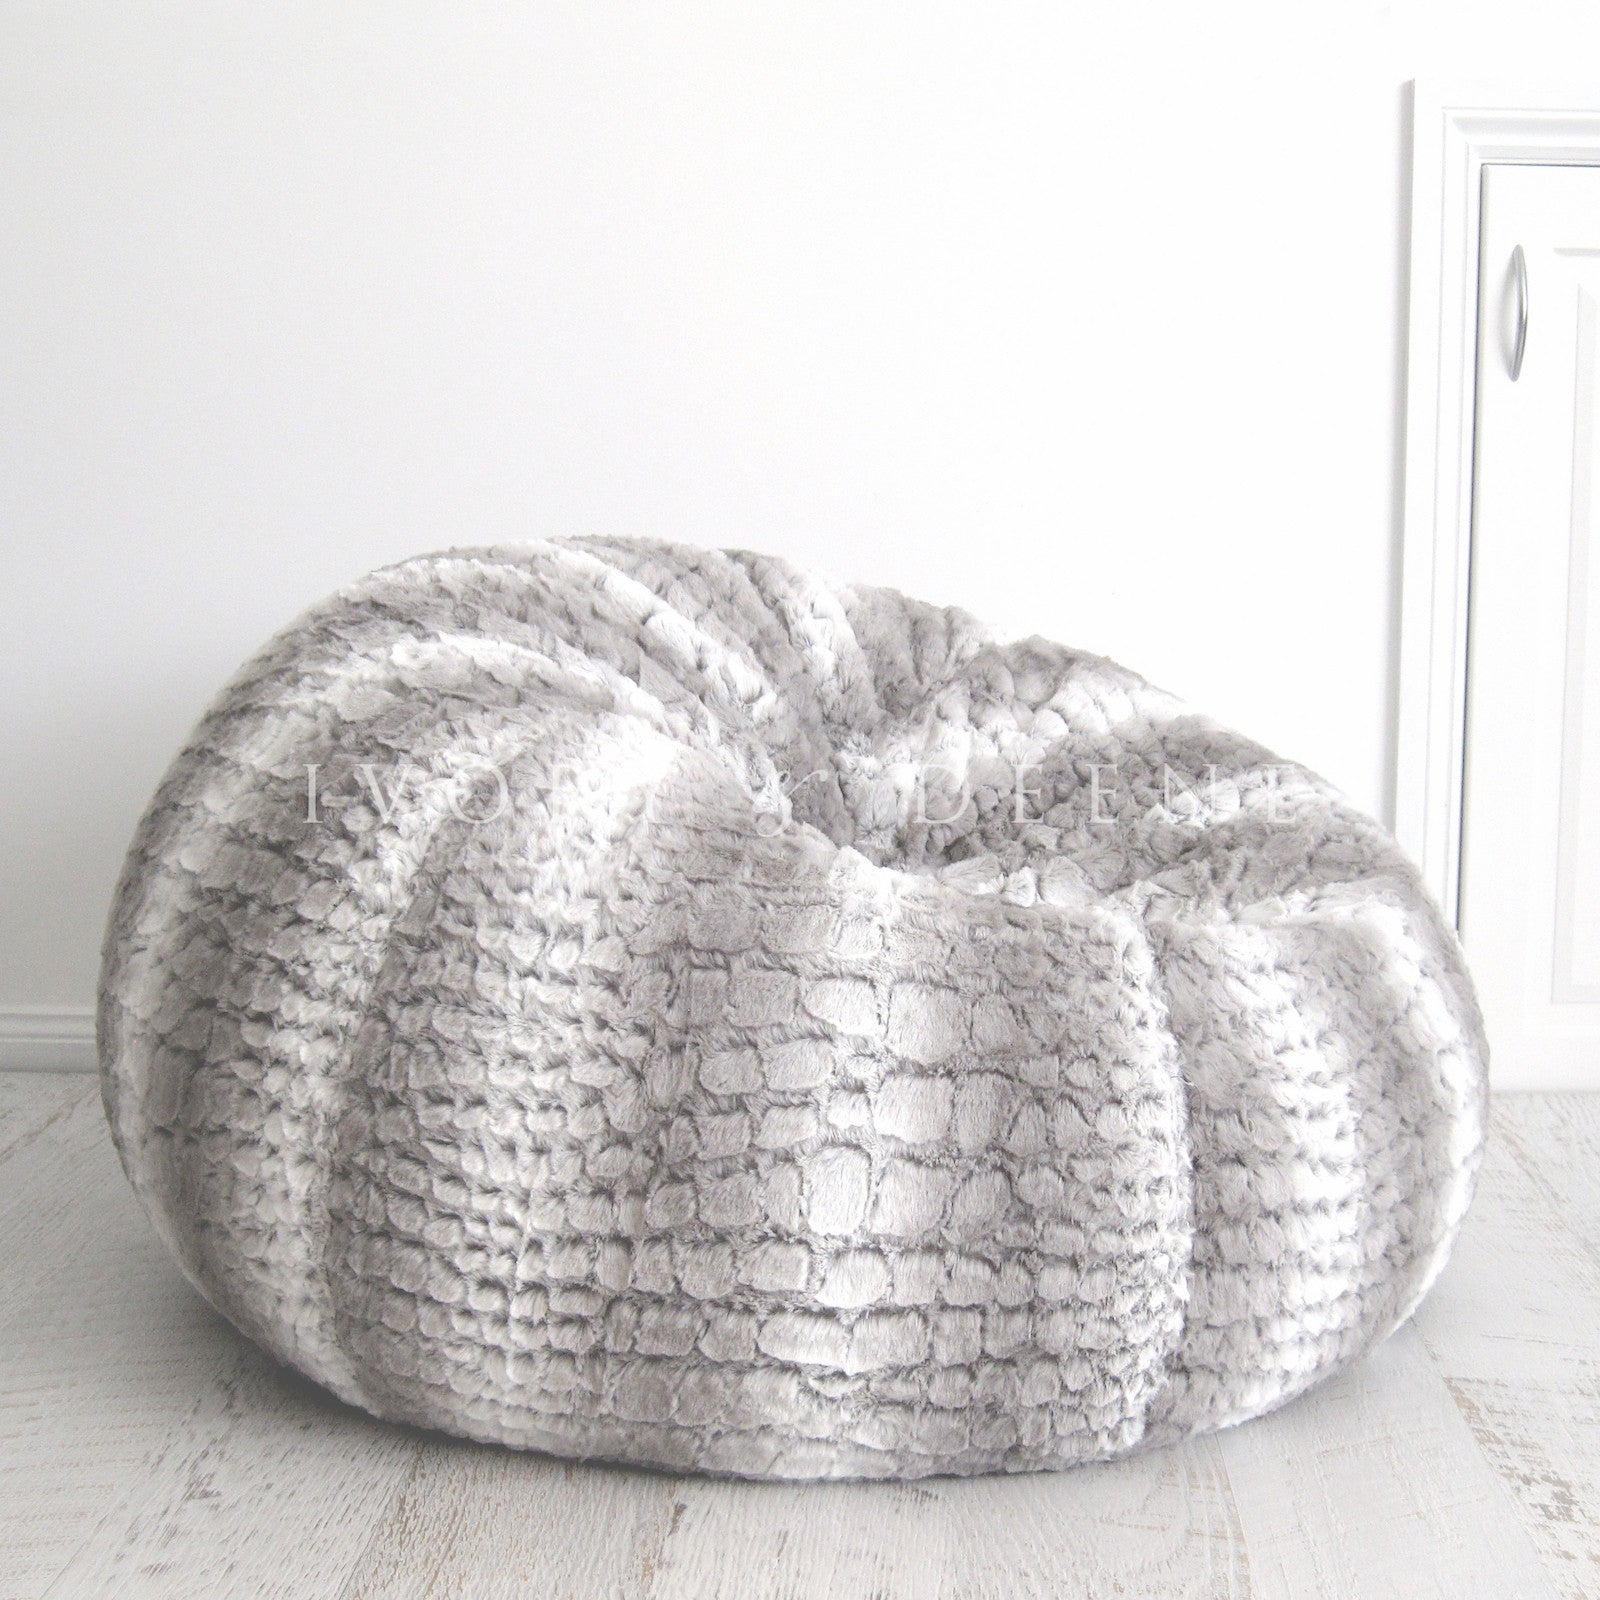 Faux Fur Bean Bag On A Wooden Floor Against White Wall